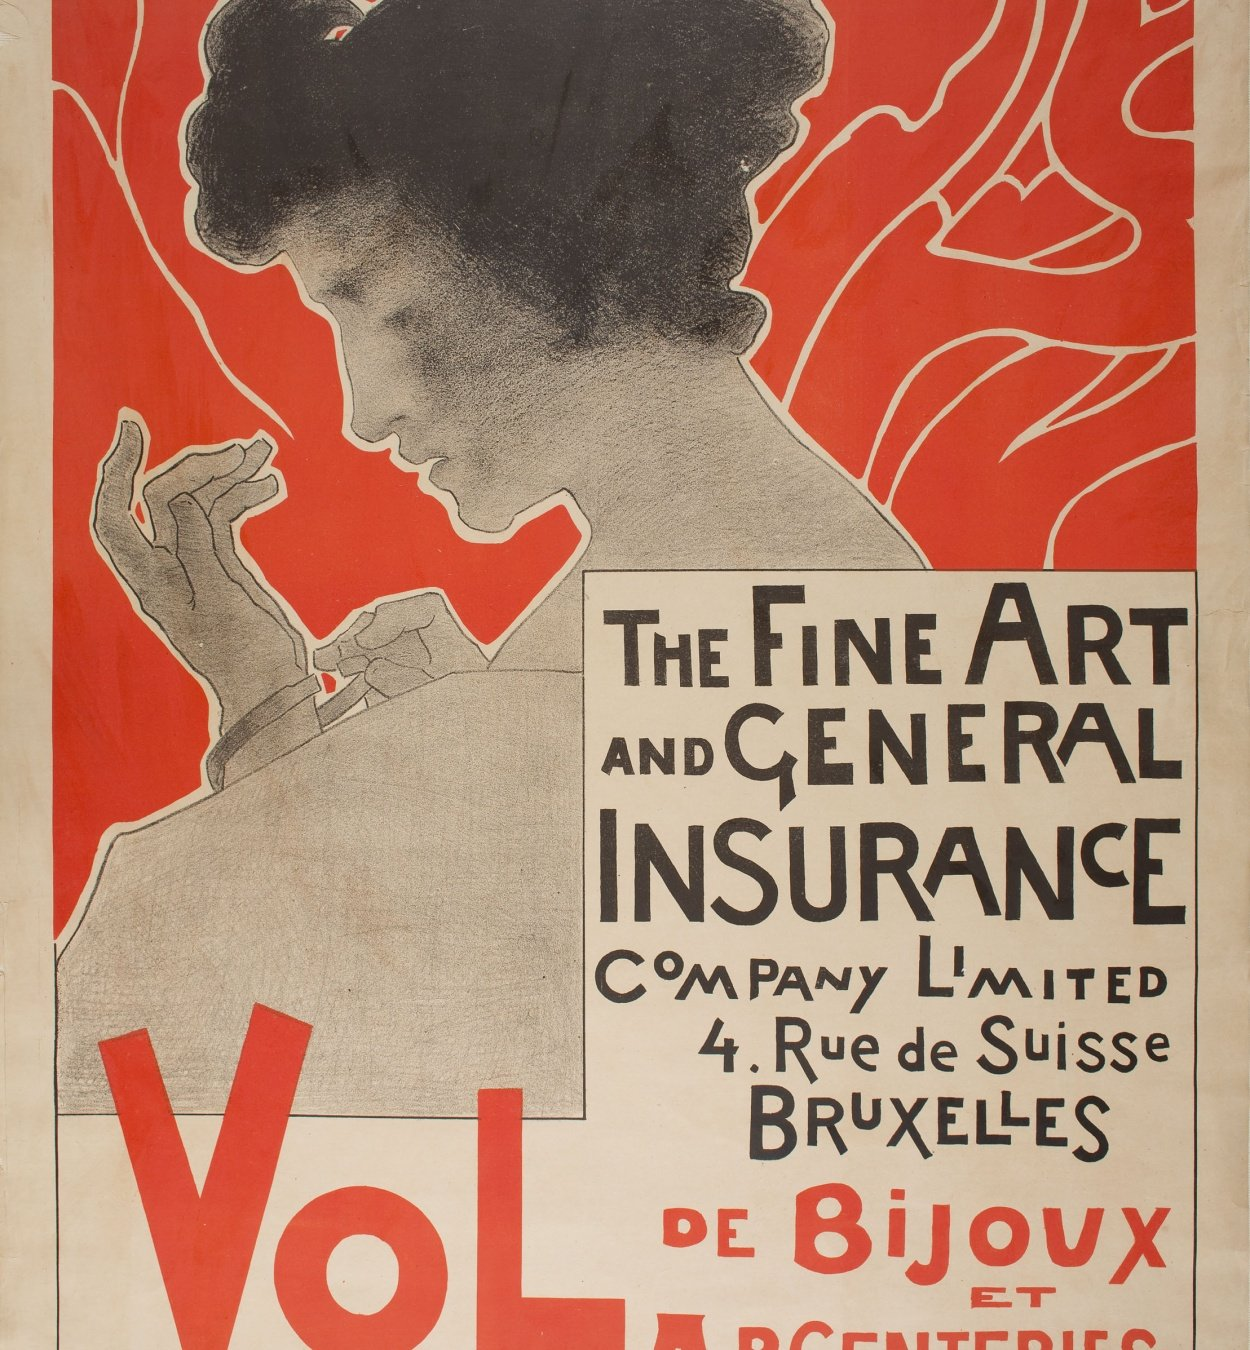 Émile Berchmans - The Fine Art and General Insurance Company Limited - 1895